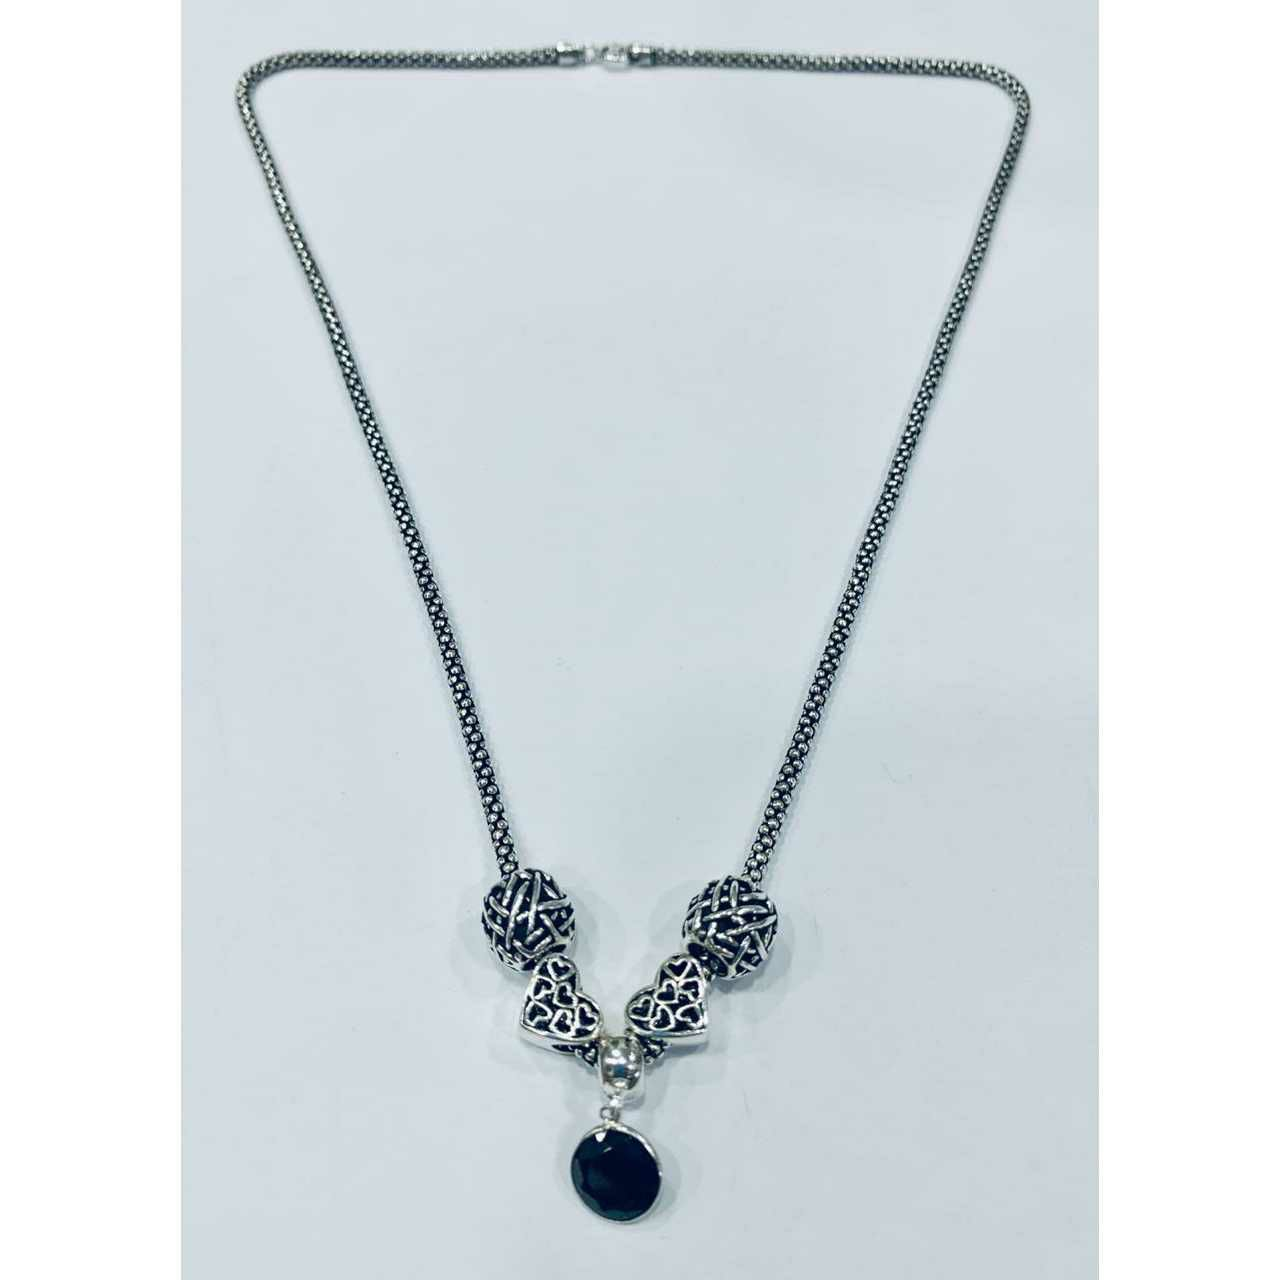 92.5 sterling silver new oxodize patern pandent With Chain ms-3653